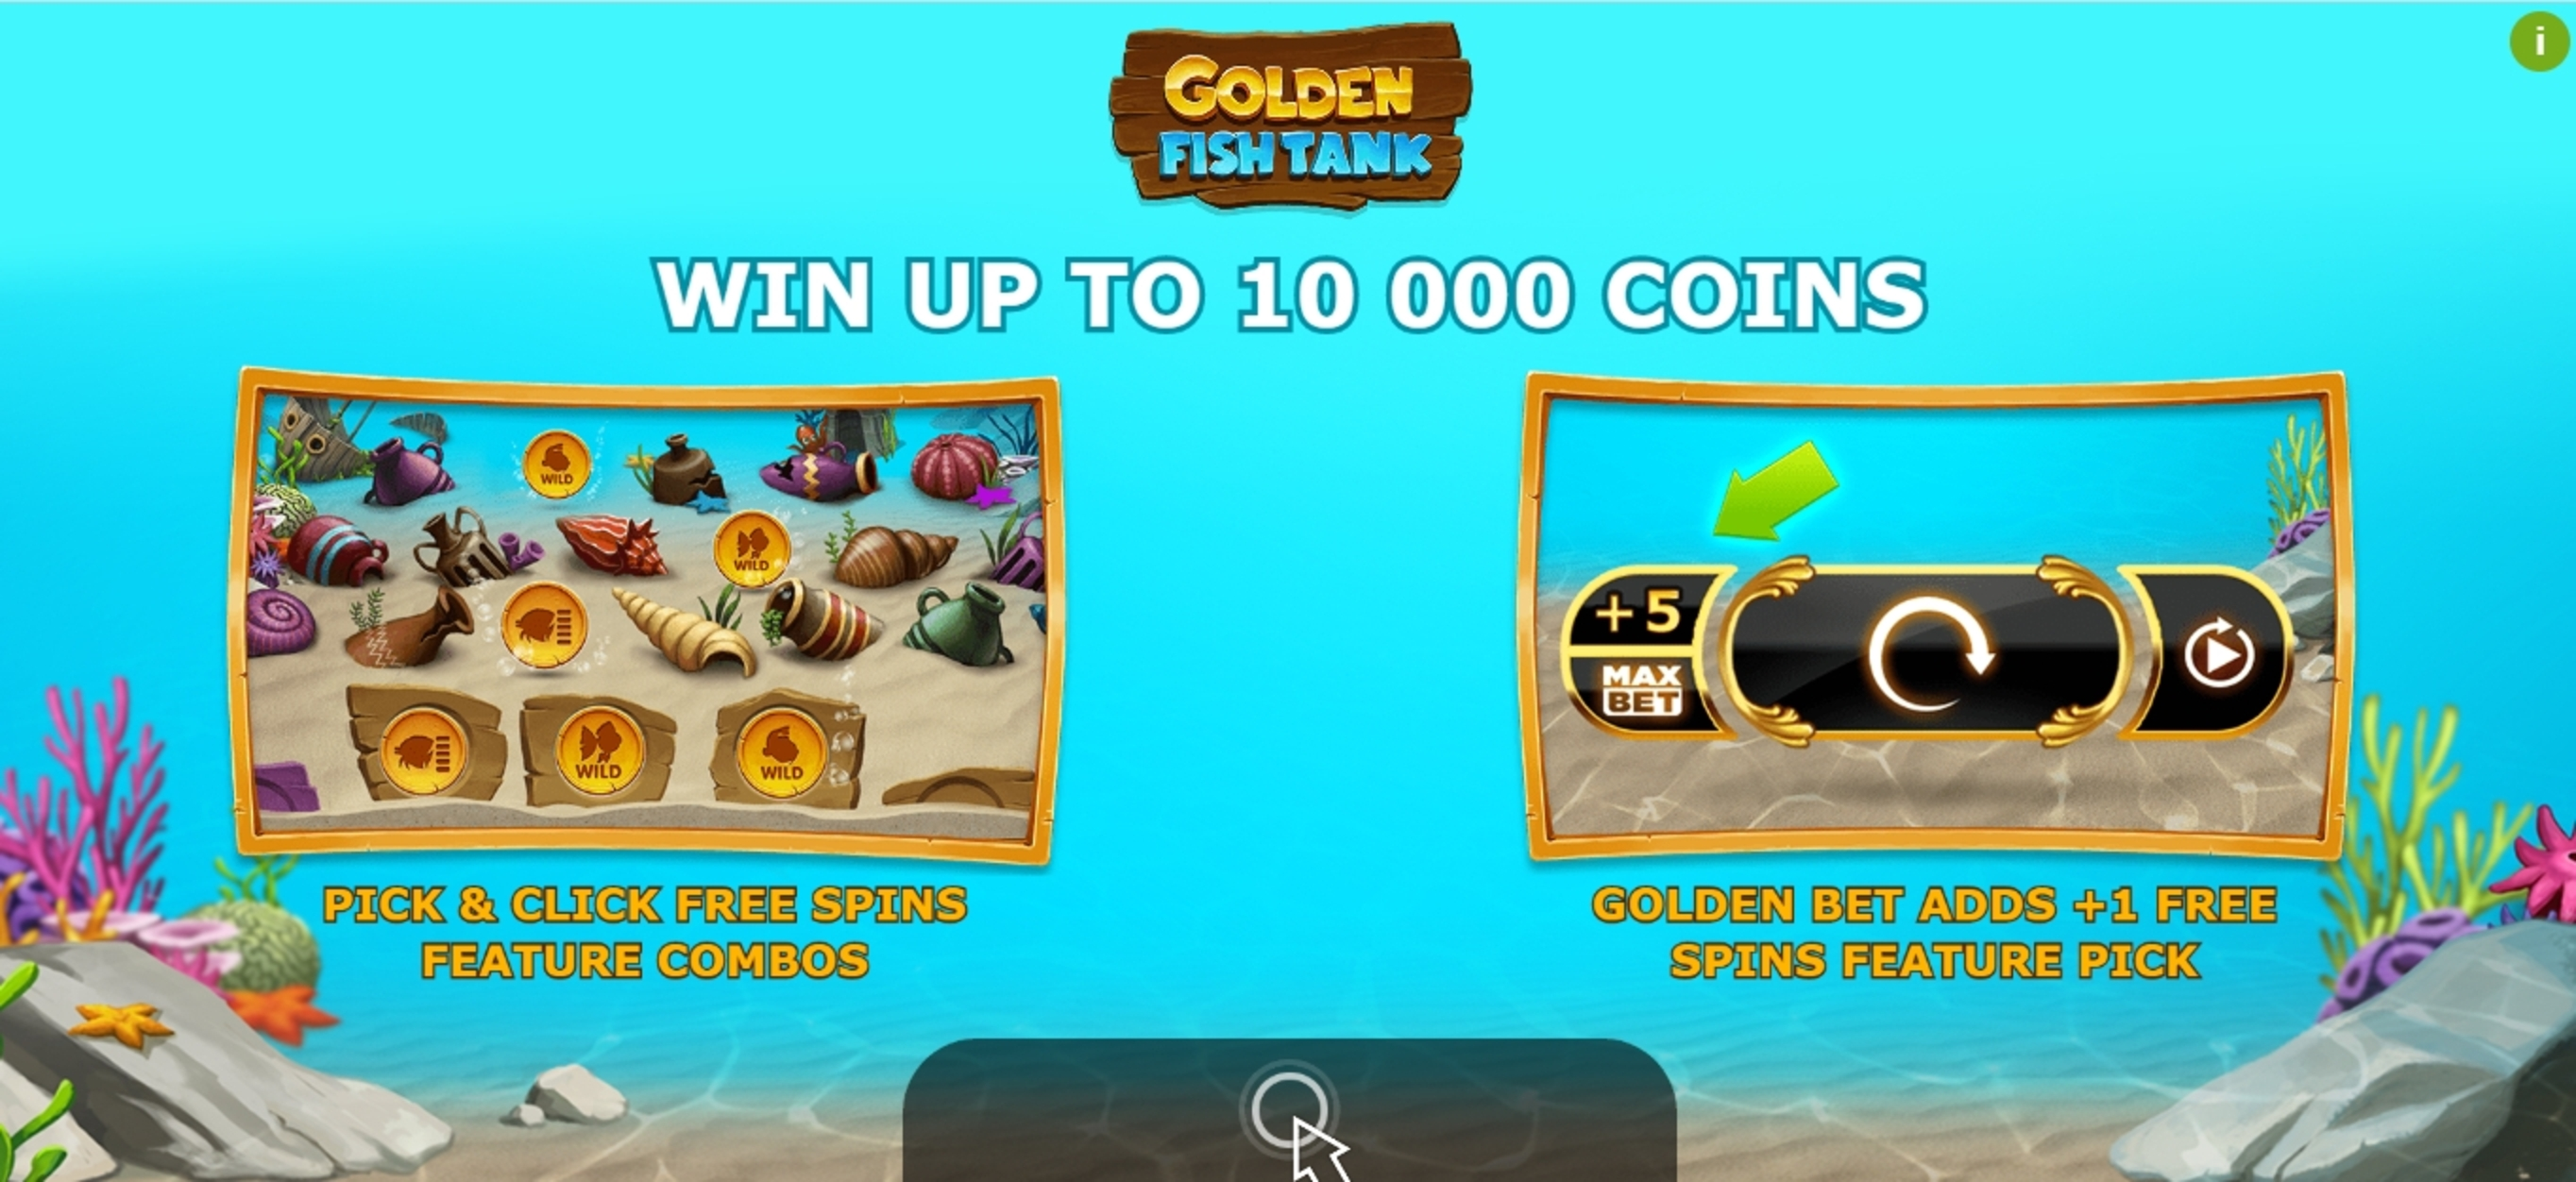 Play Golden Fish Tank Free Casino Slot Game by Yggdrasil